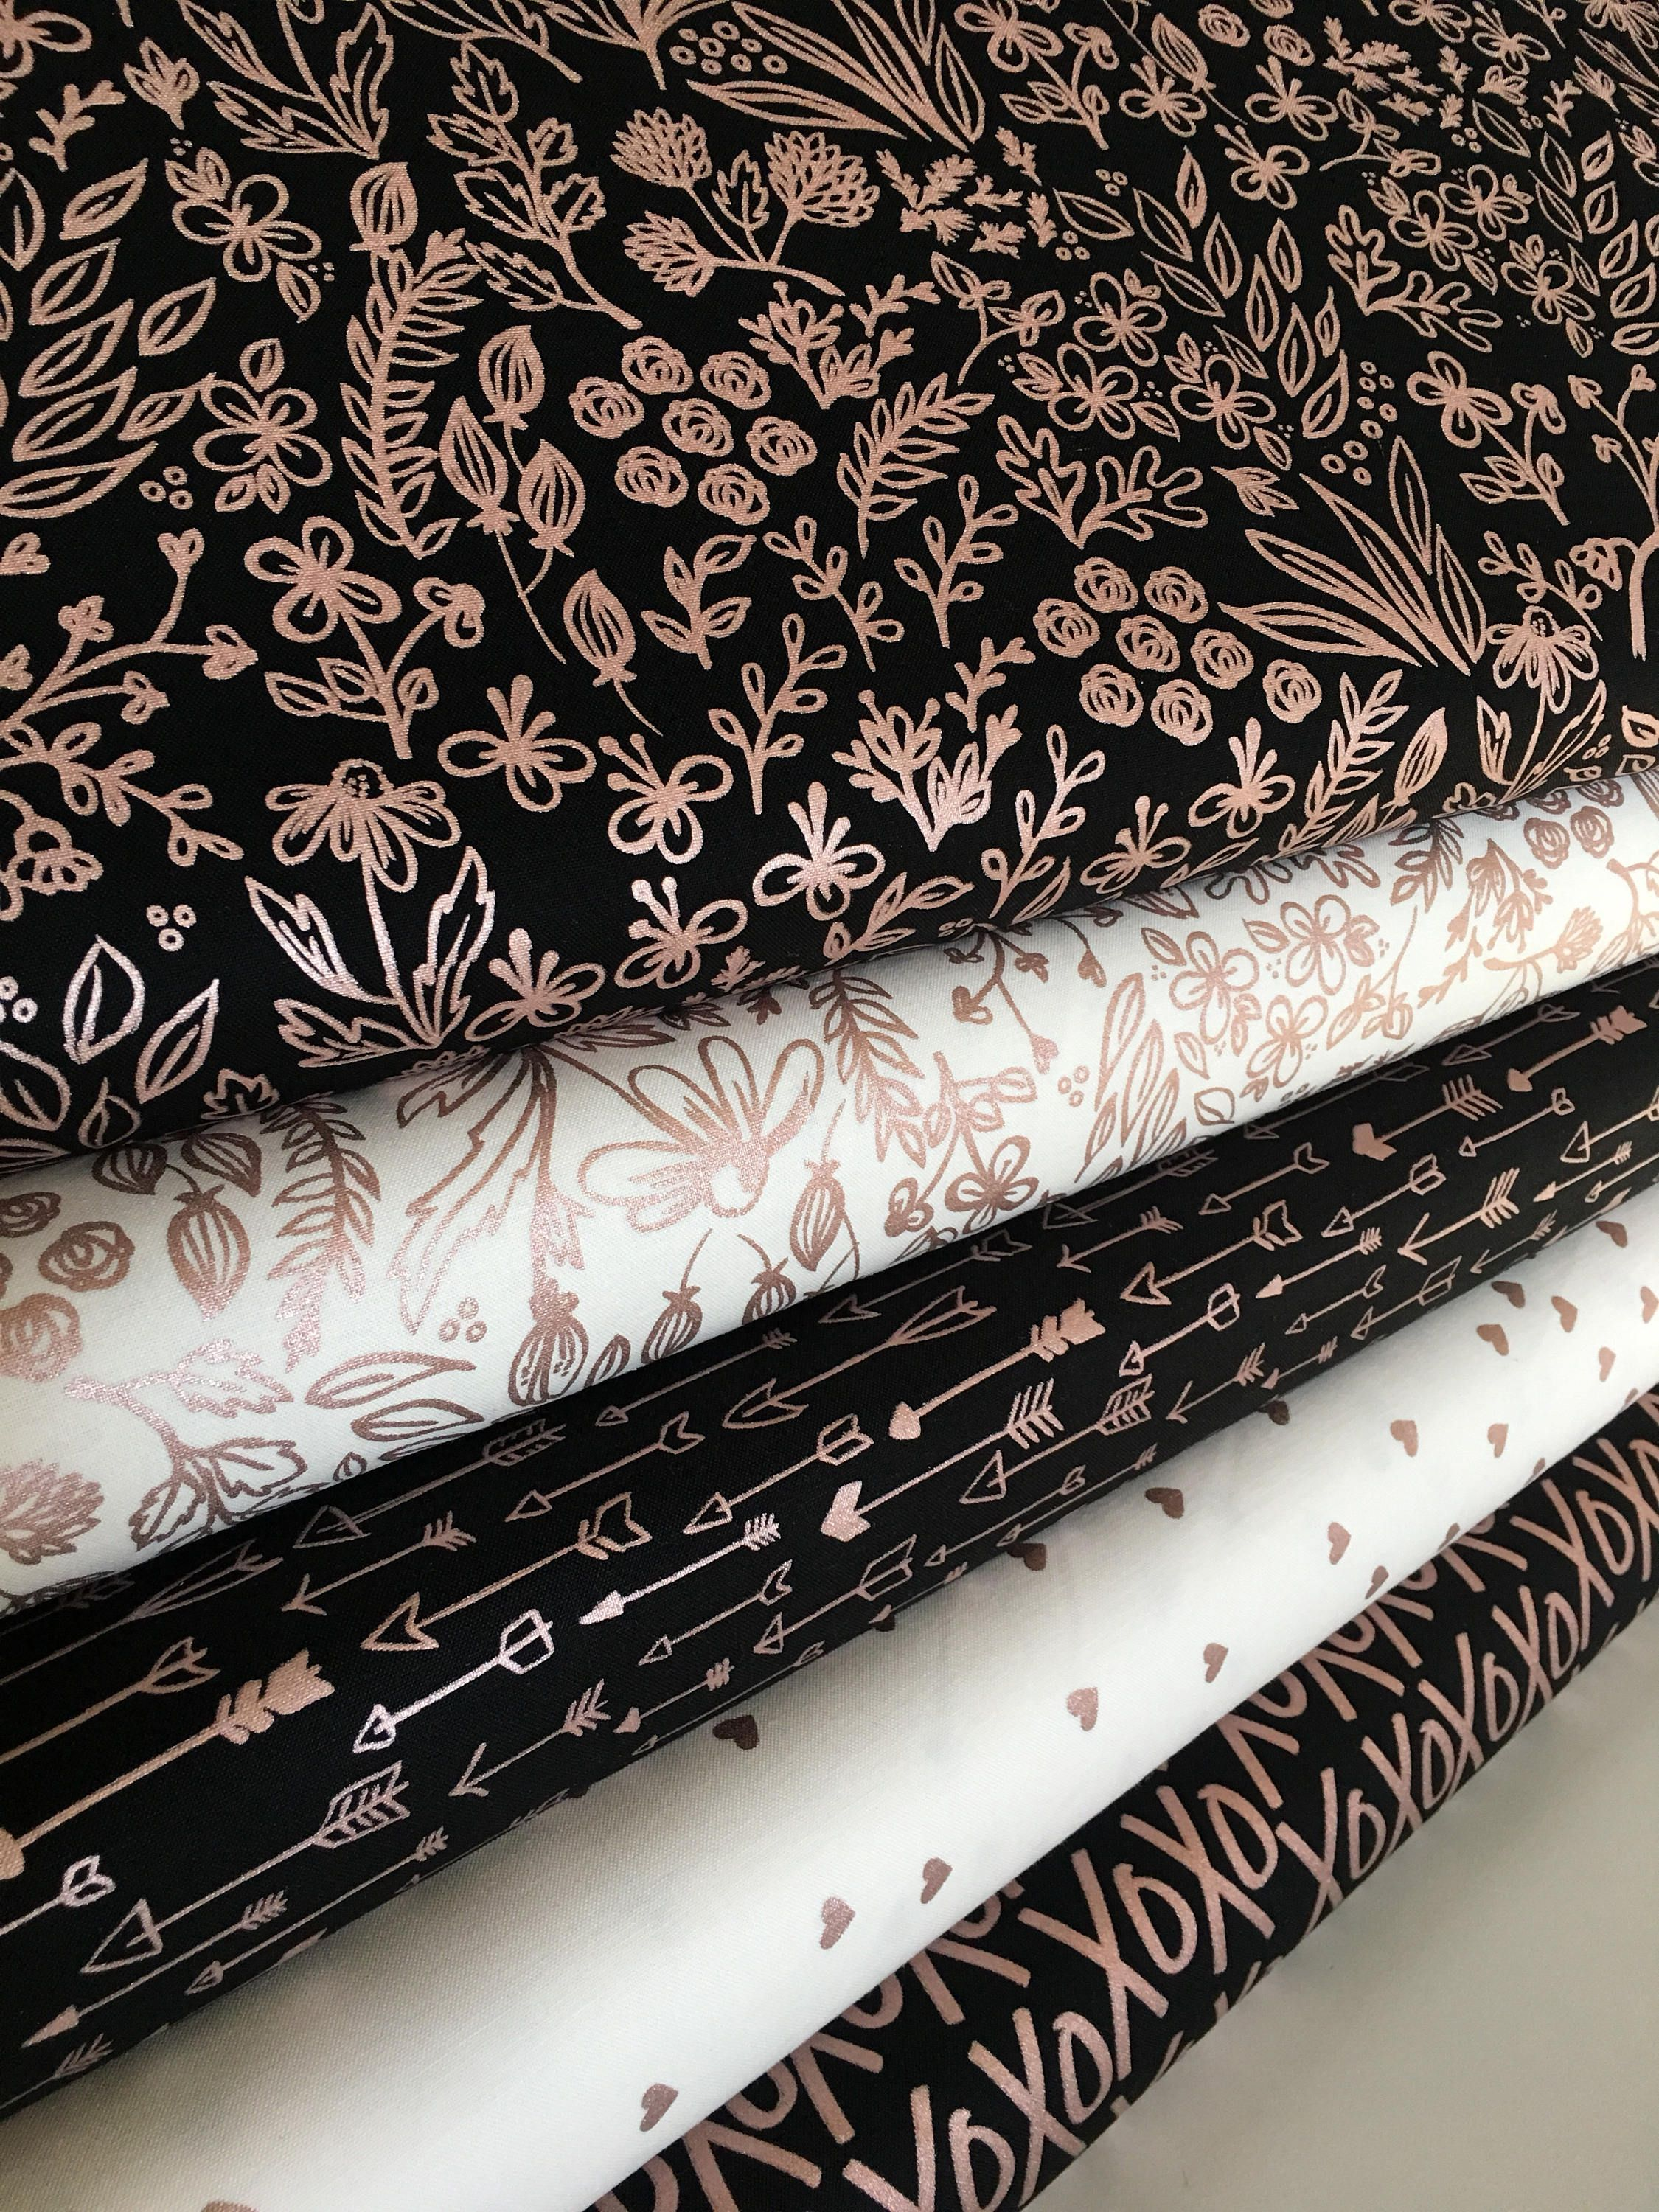 Rose Gold Fabric Modern Nursery Quilting Black White Decor Yes Please Bundle Of 5 Choose The Cuts By Fabricpe On Etsy